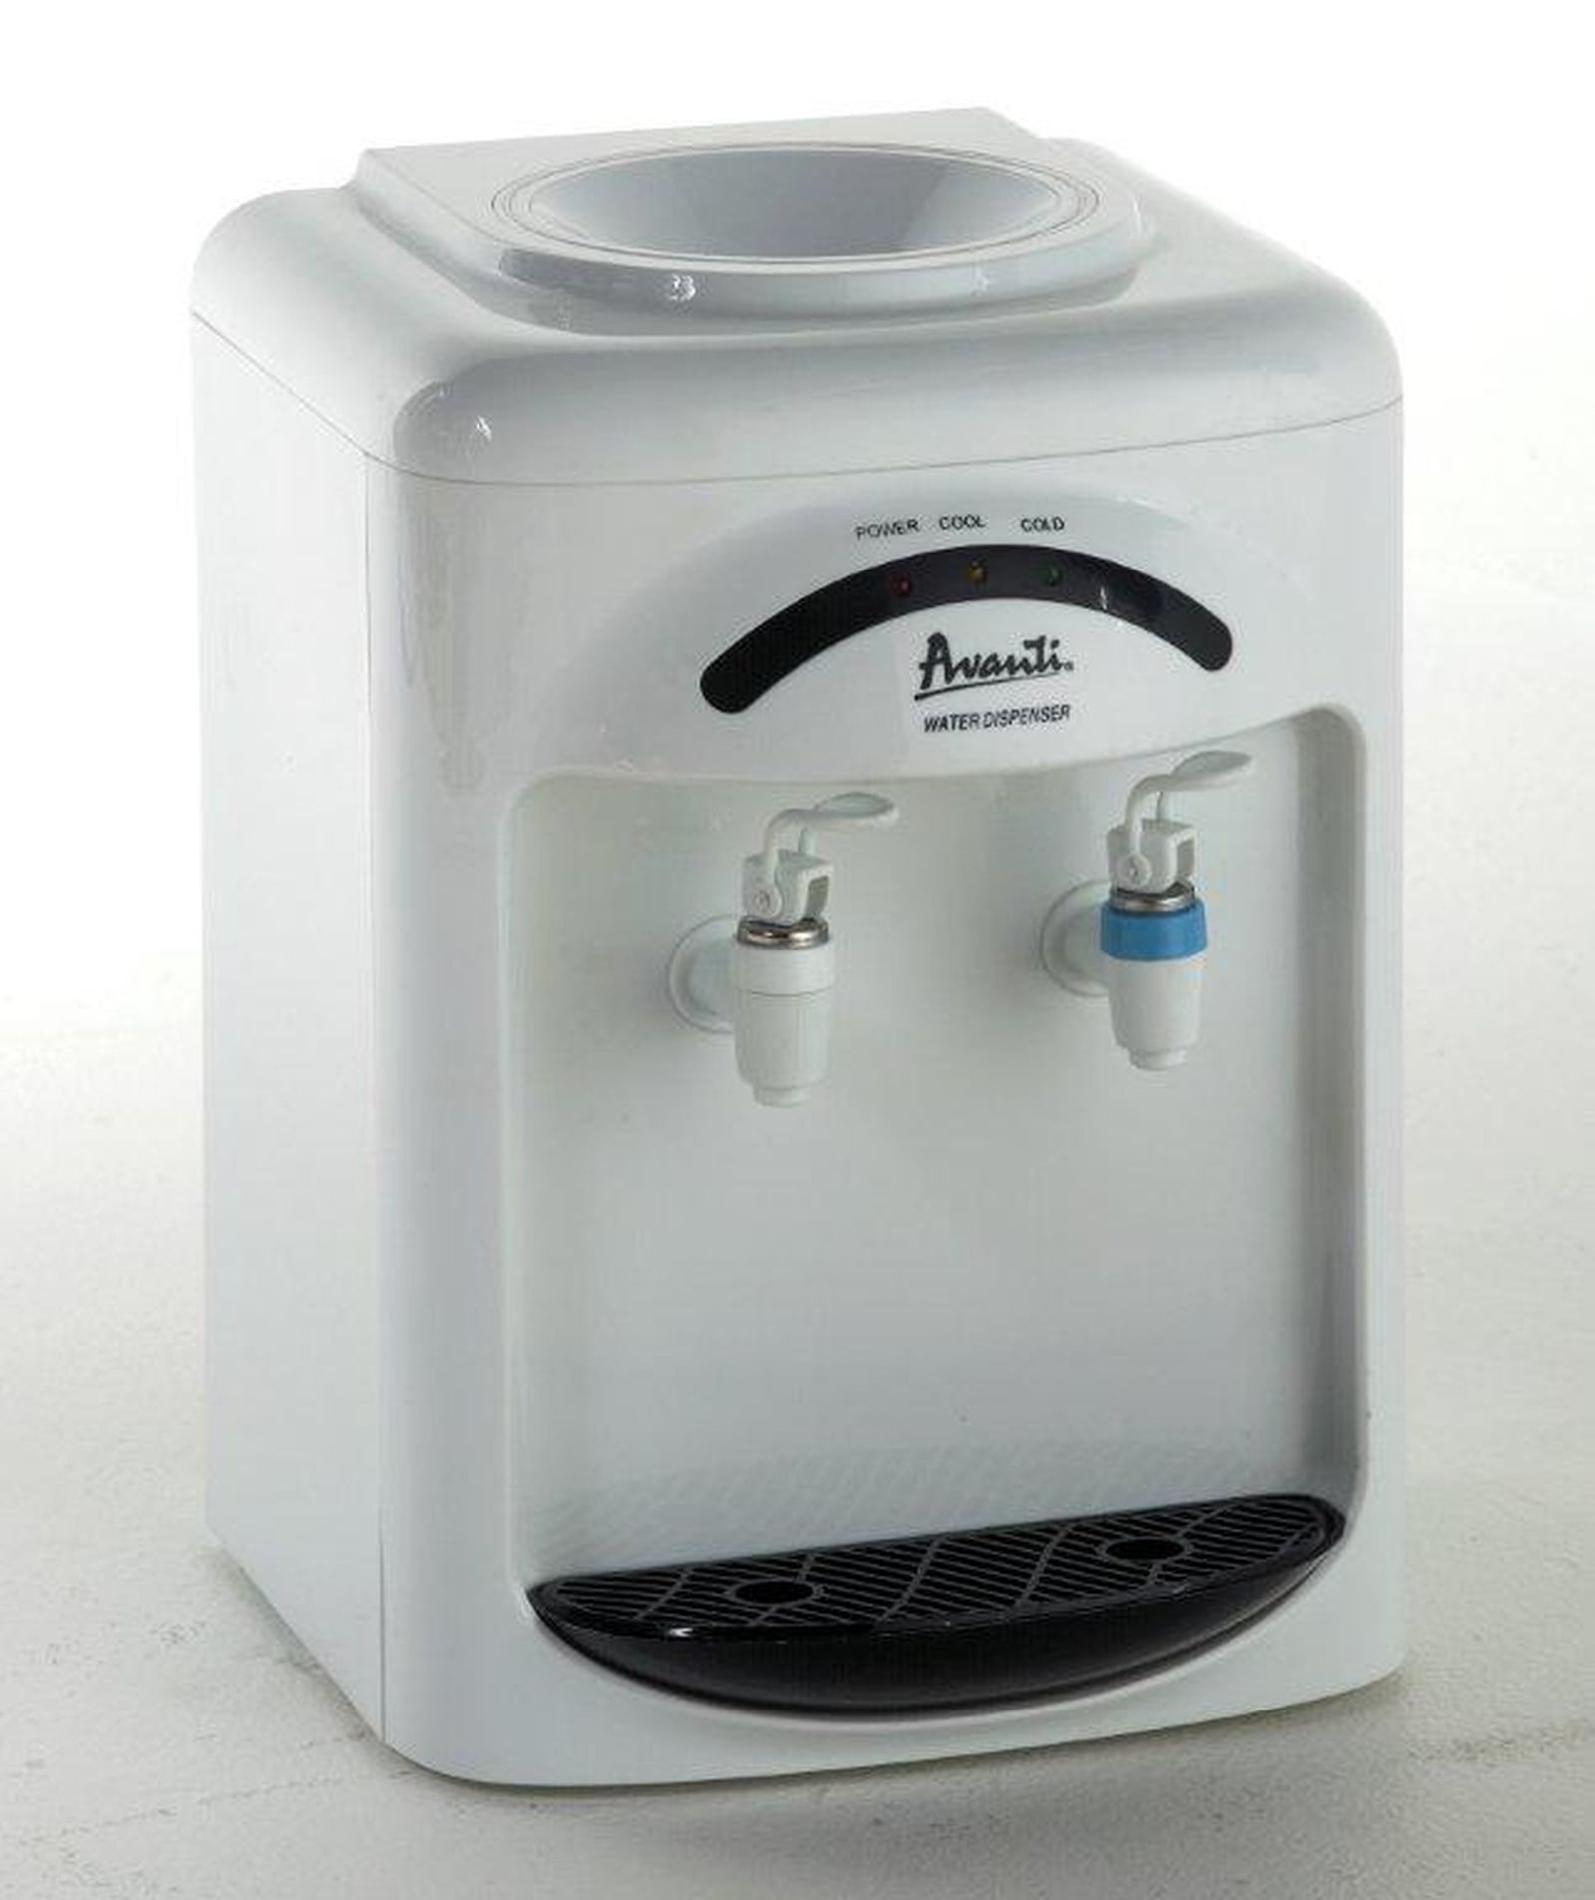 Avanti Countertop Dishwasher Avanti Cold And Room Temperature Countertop Water Dispenser